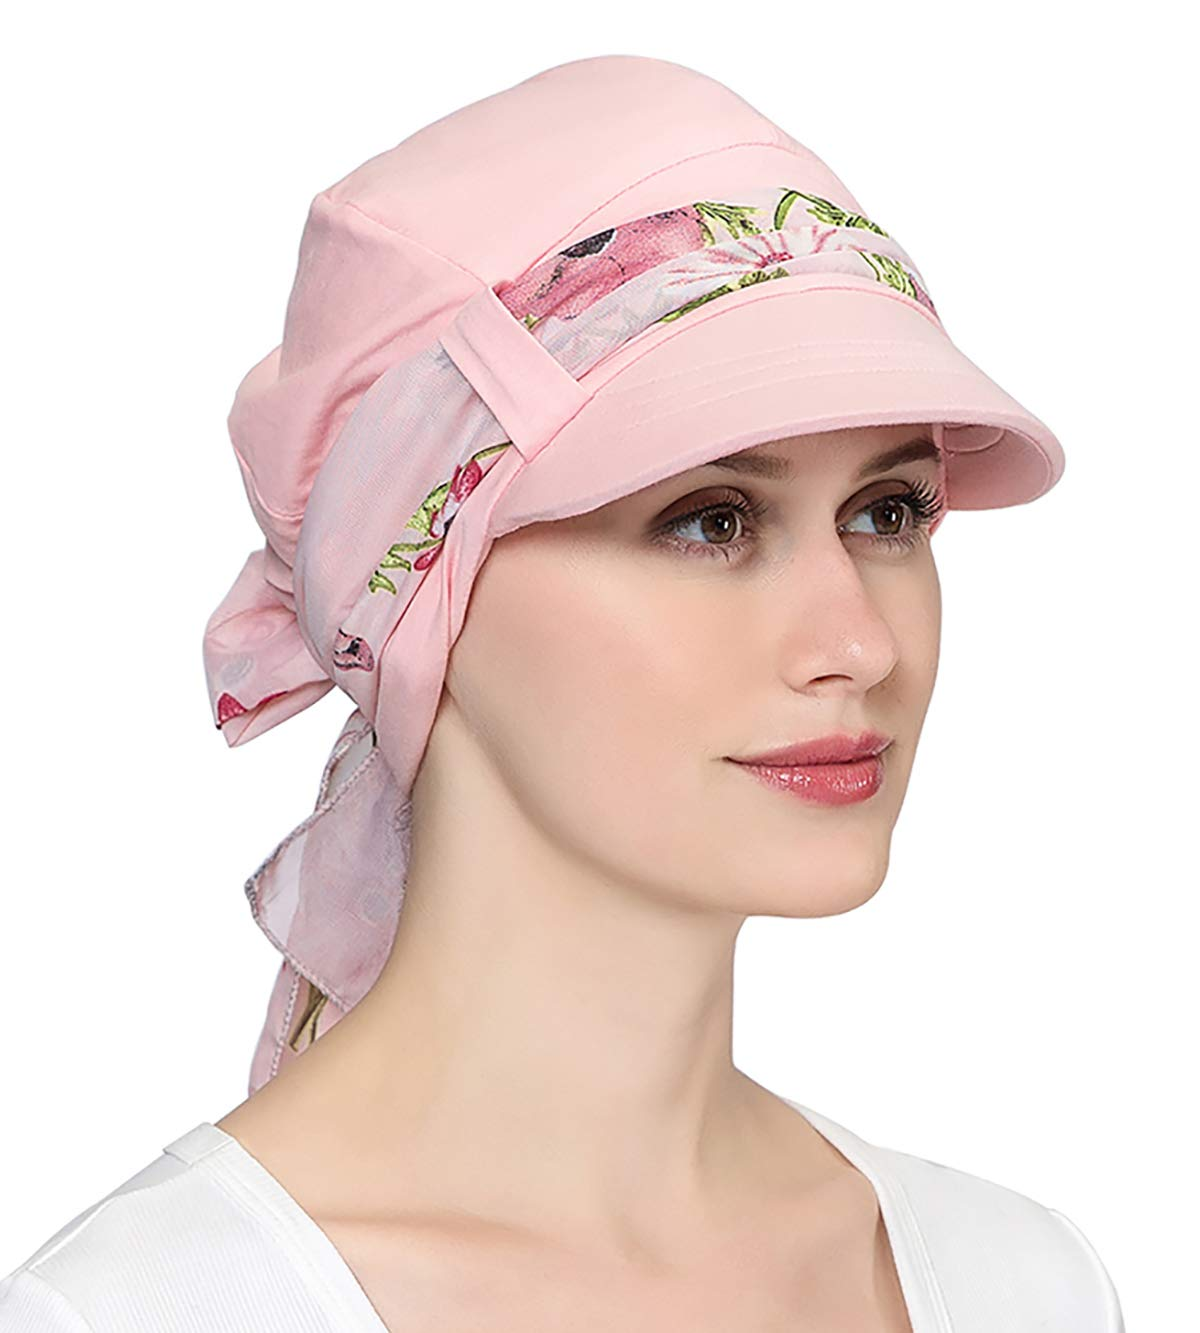 Visor Chemo Hat with Silky Scarf Sets for Women with Chemo Hair Loss Turbans(Light Pink, One Size Fit Most)